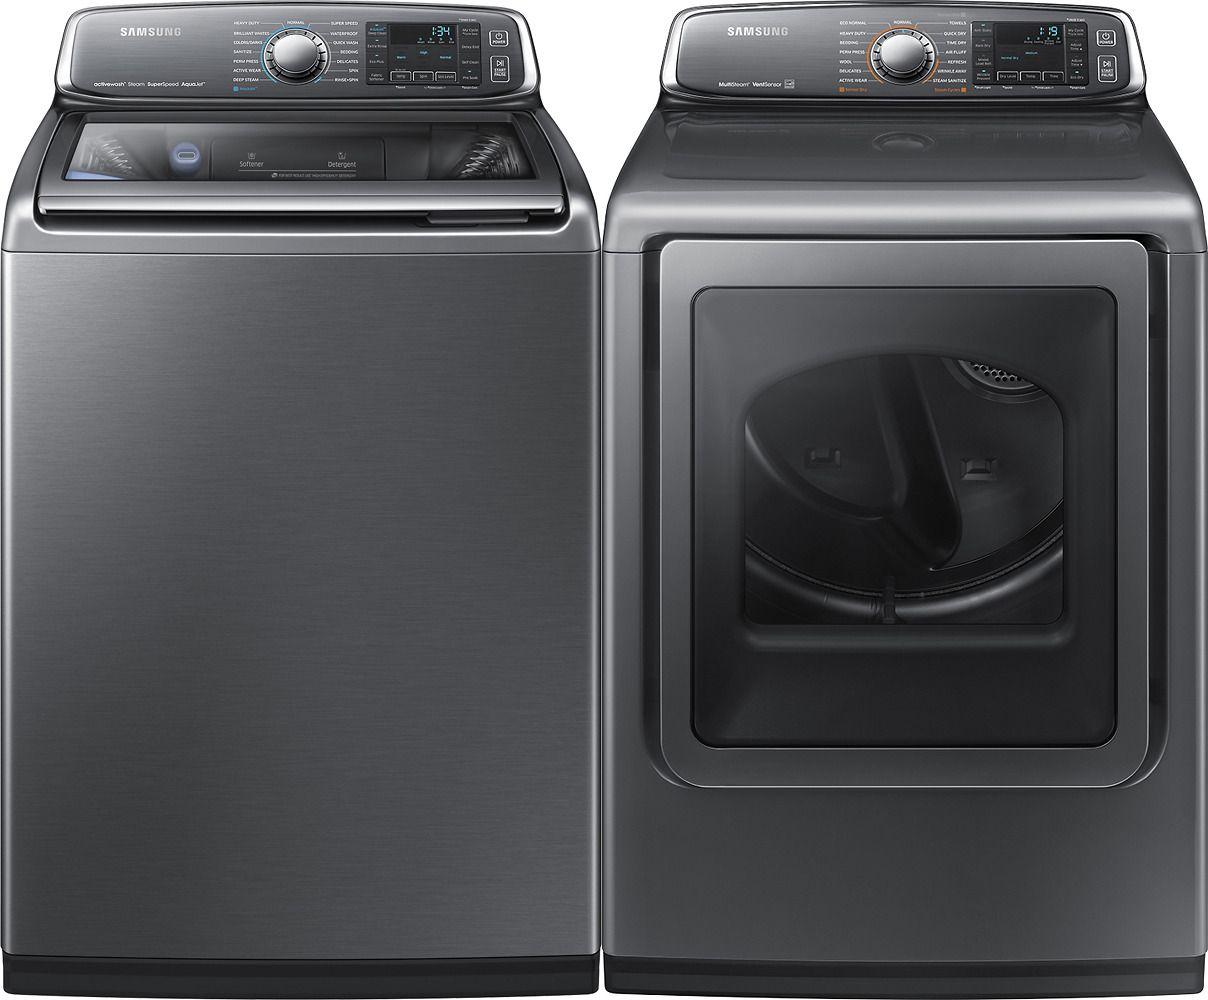 Top Ten Best Quiet Washing Machines 2017 Samsung Washer And Dryer Review From